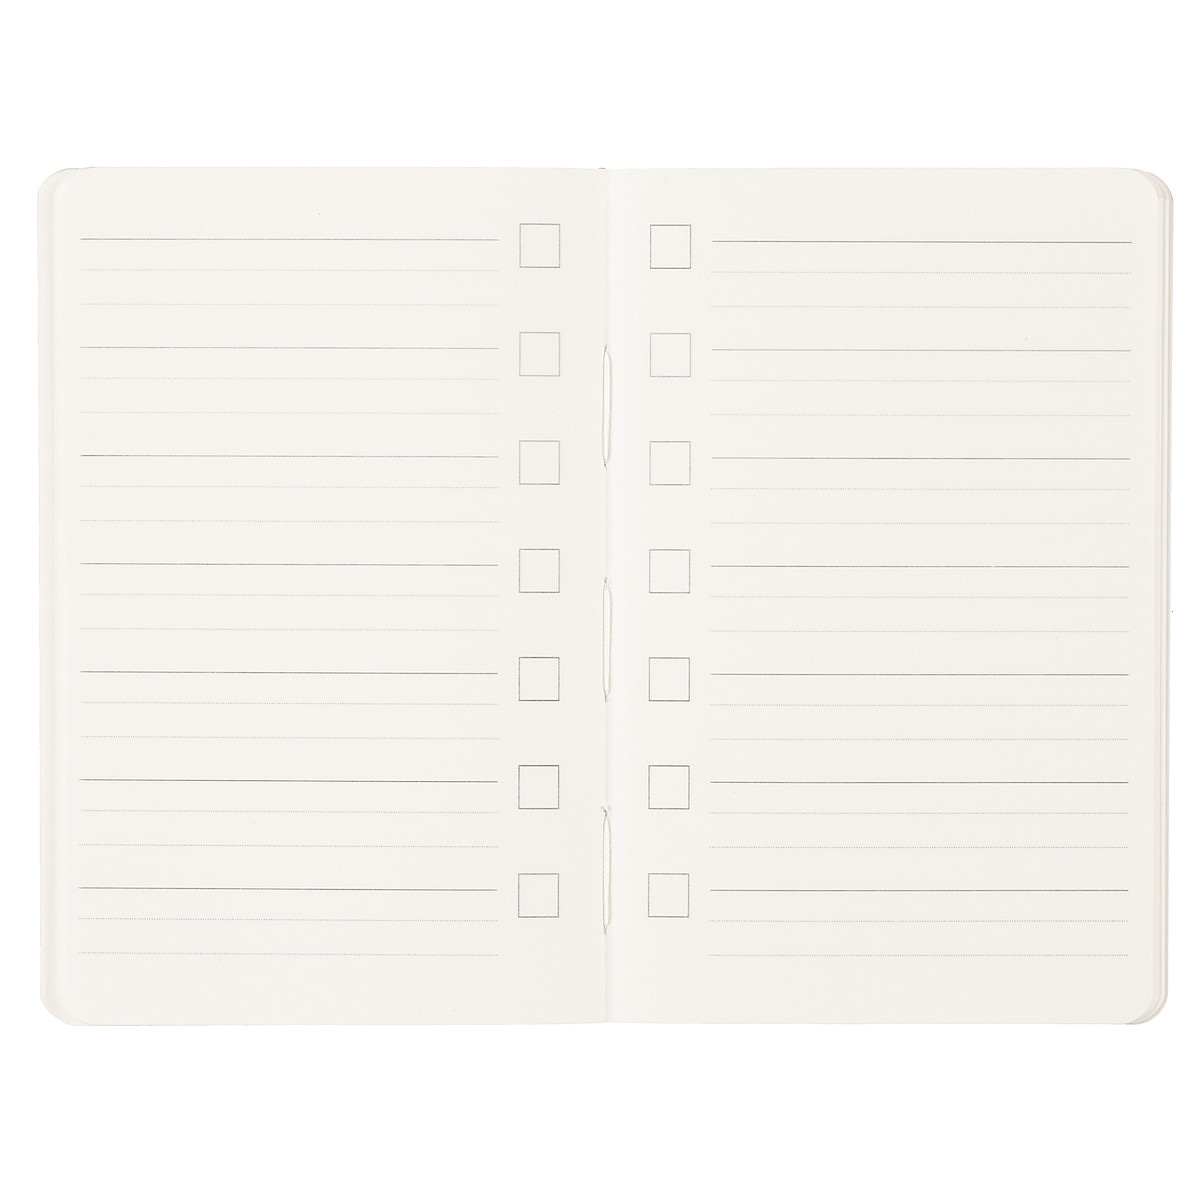 A6 Notepads, 4-pack